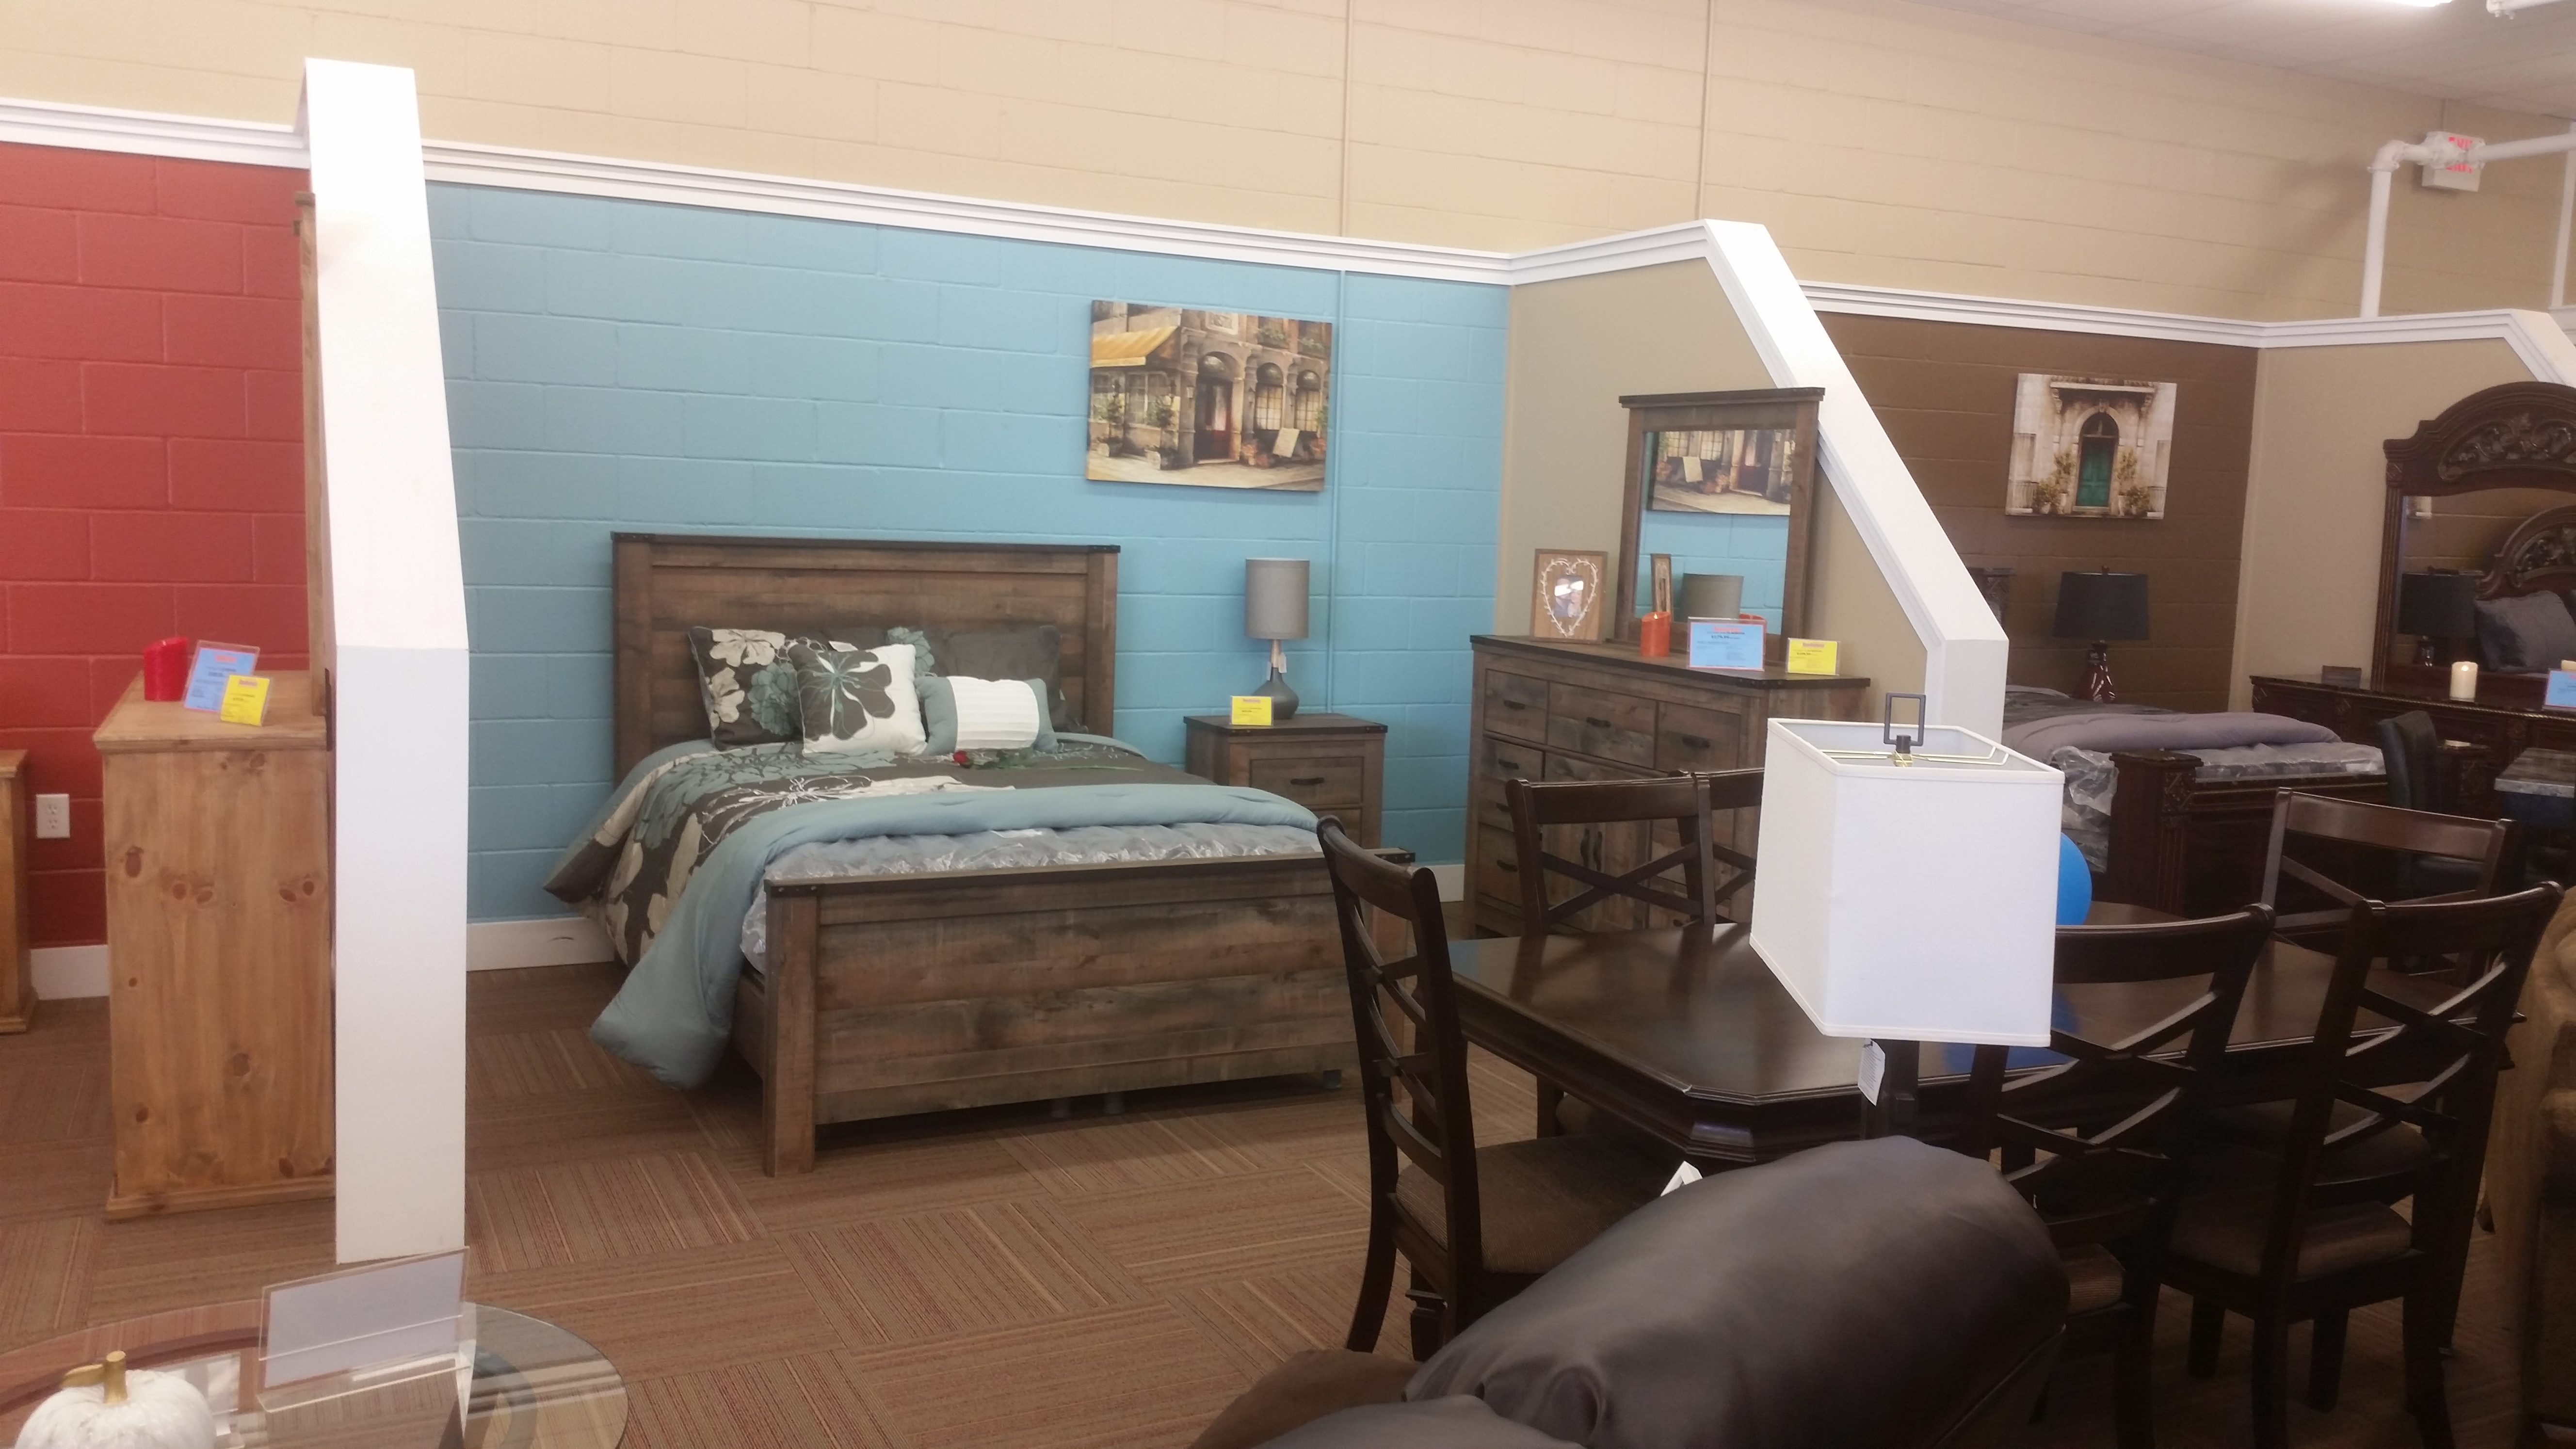 New avenues furniture store lubbock tx 79413 for Furniture lubbock